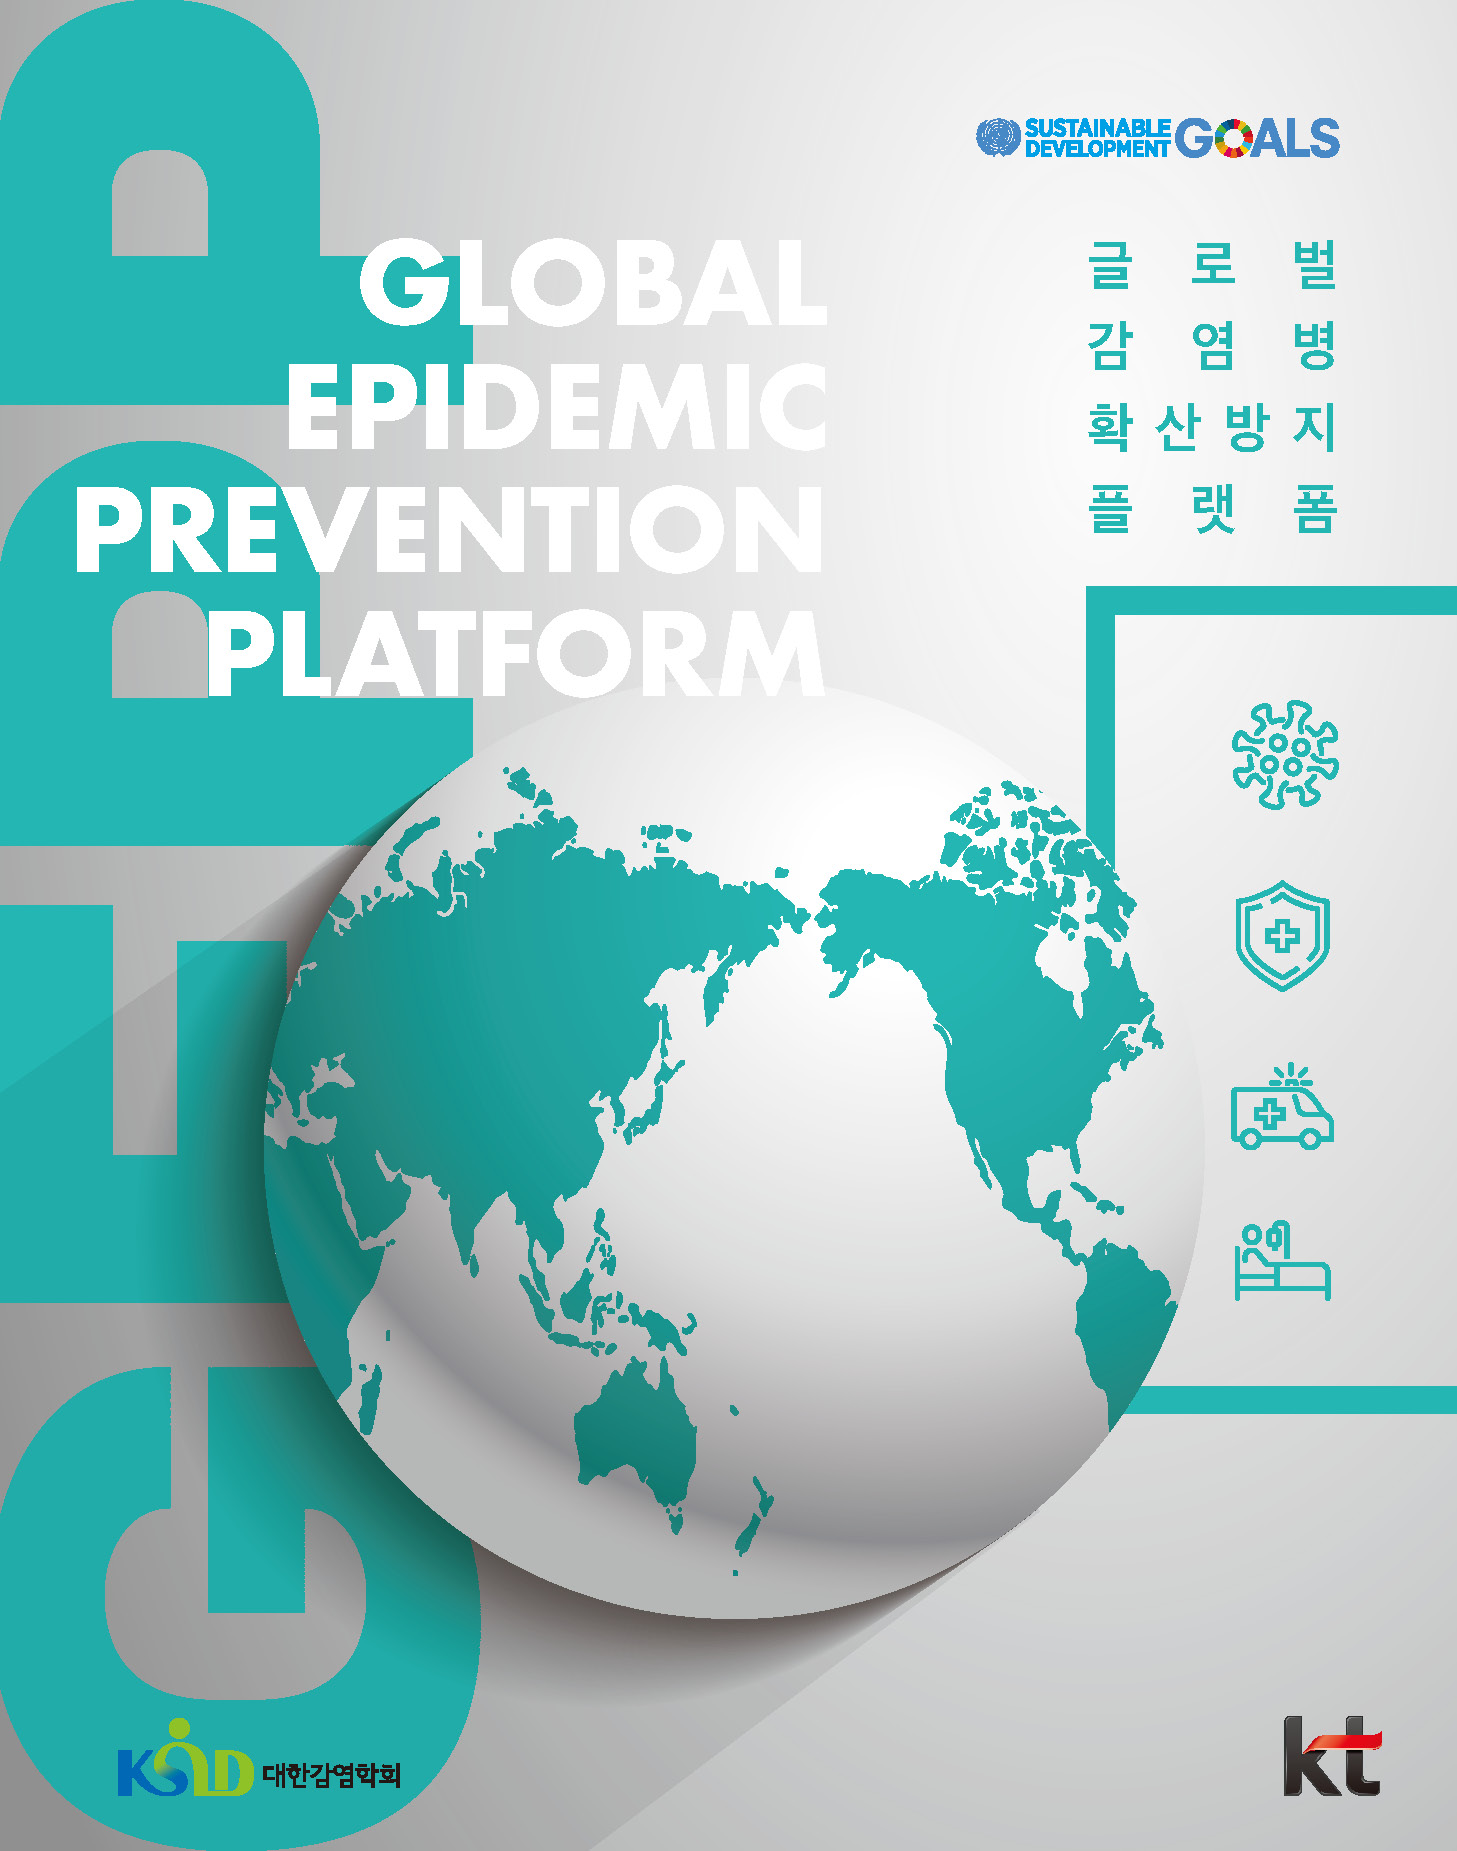 SUSTAINABEL DEVELOPMENT GOALS. GLOBAL EPIDEMIC PREVENTION PLATFORM. 글로벌 감염병 확산방지 플랫폼.KSID 대한감염학회. KT